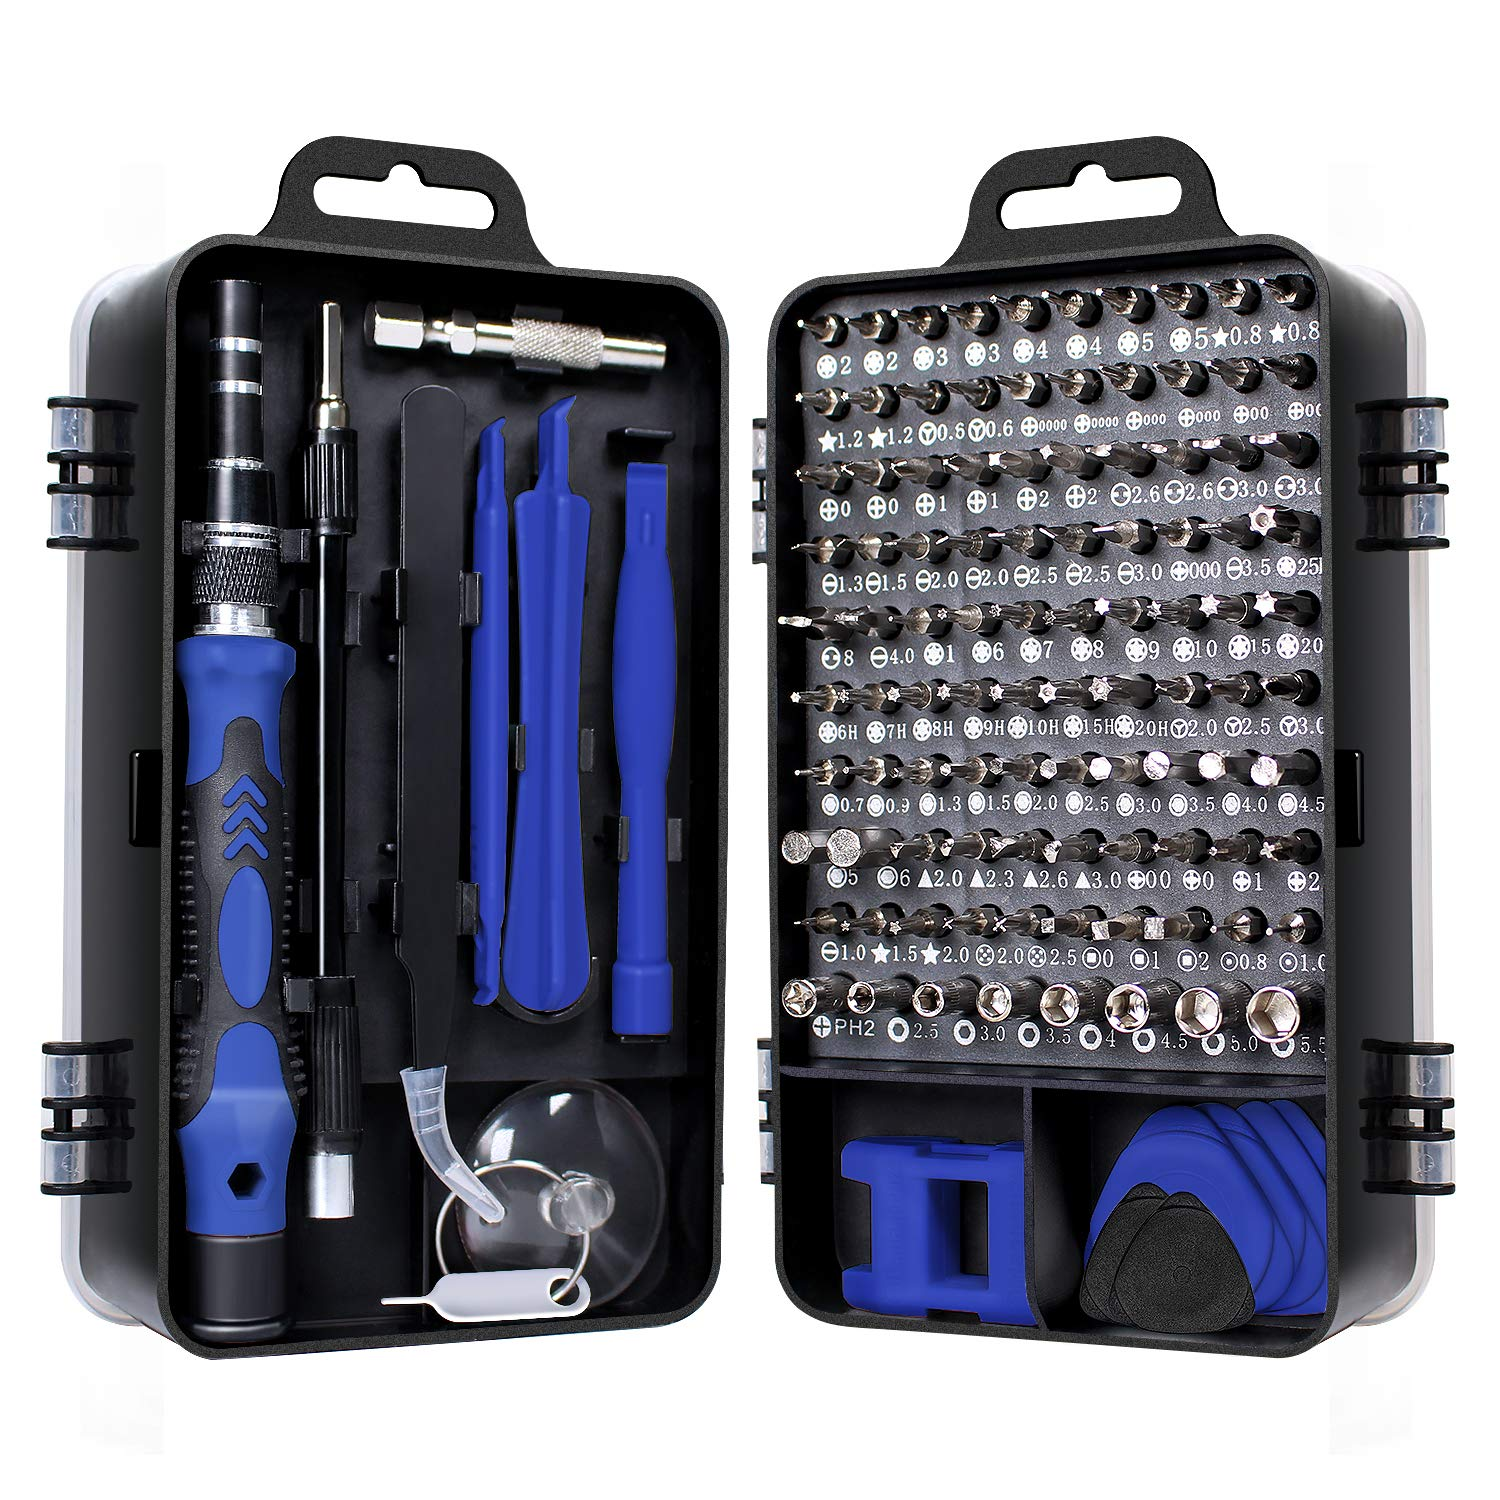 Nice little screwdriver set